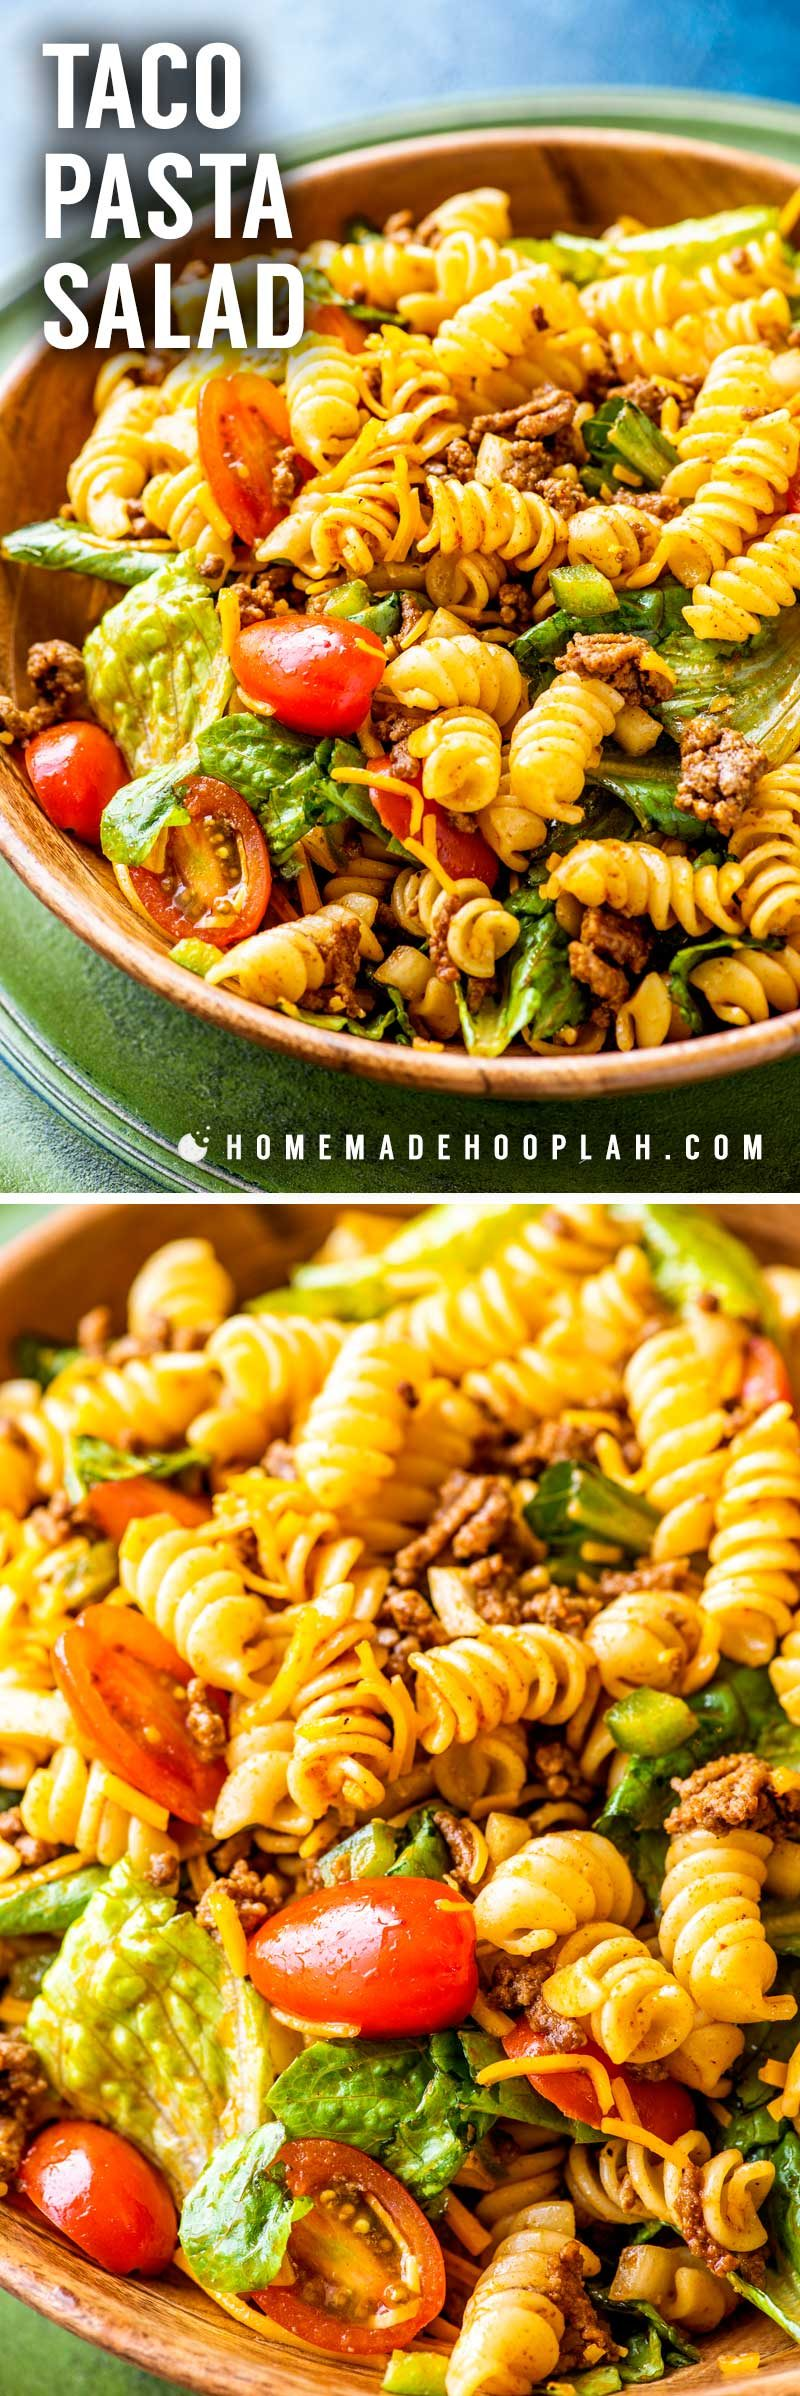 Classic taco pasta salad with Catalina dressing.